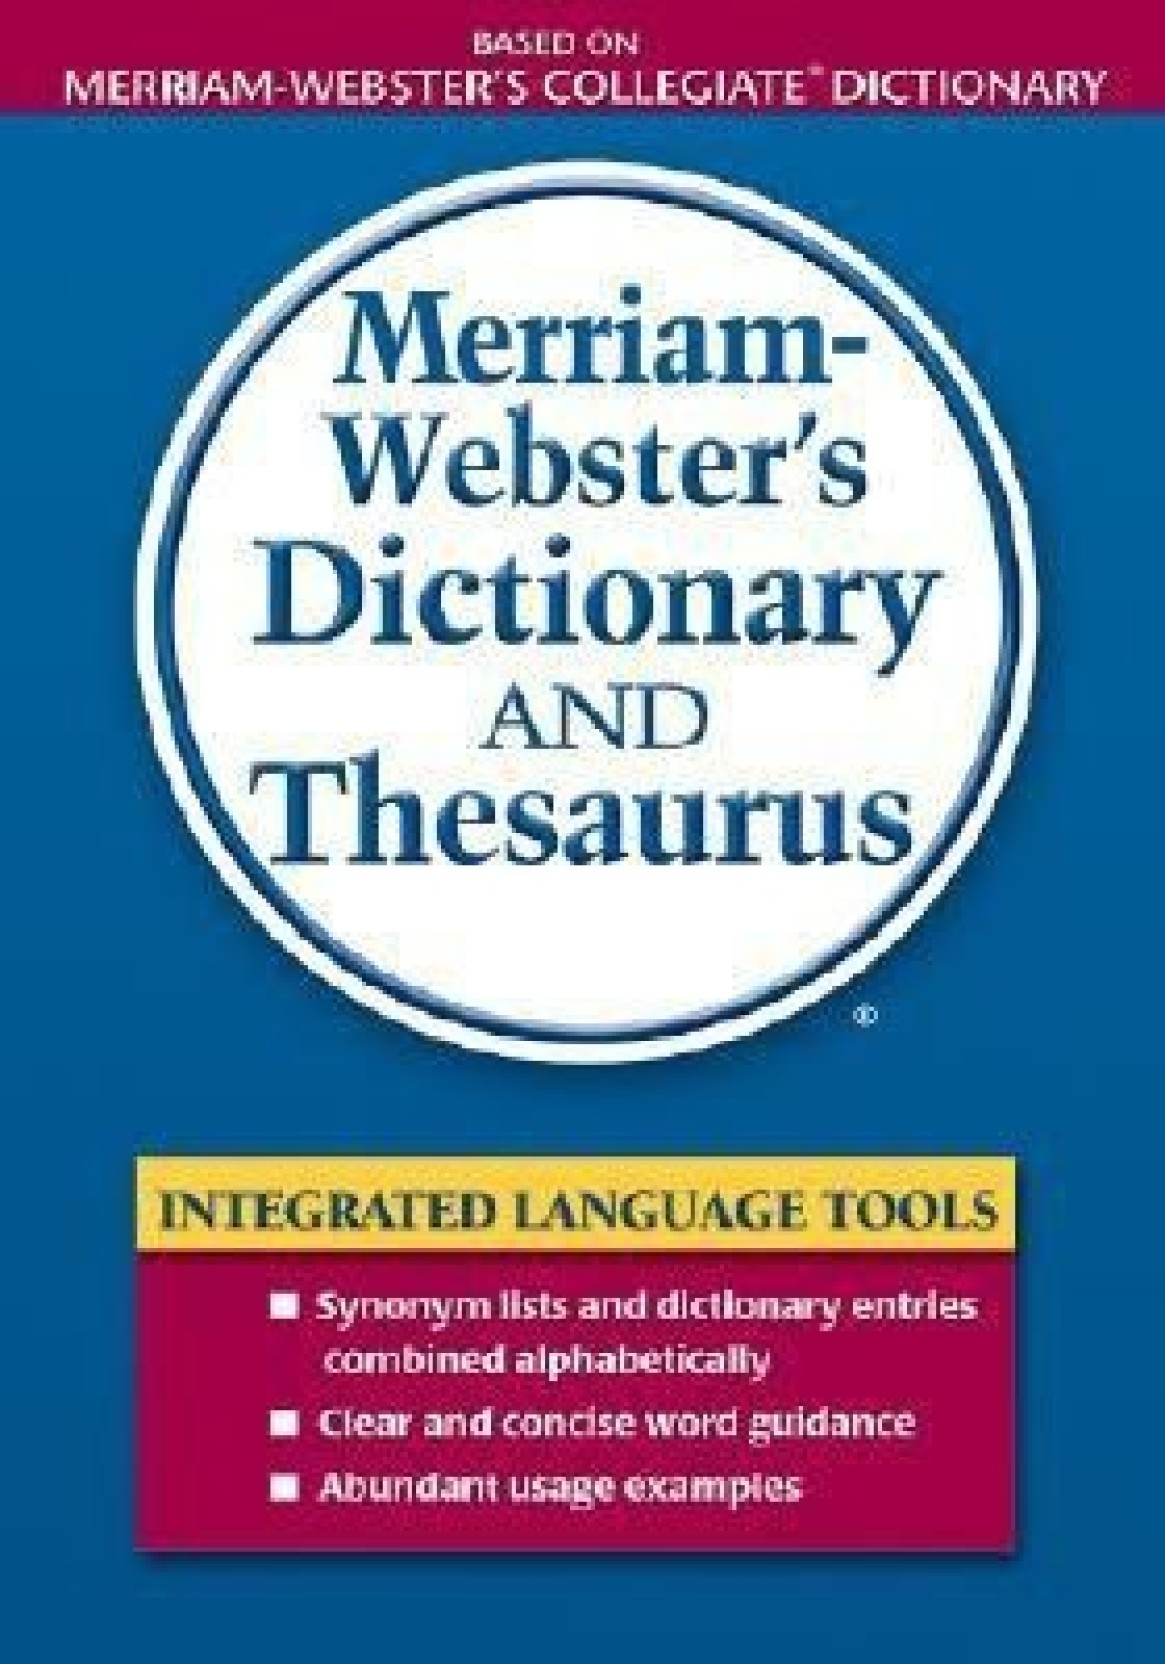 Merriam Webster's Dictionary and Thesaurus. ADD TO CART